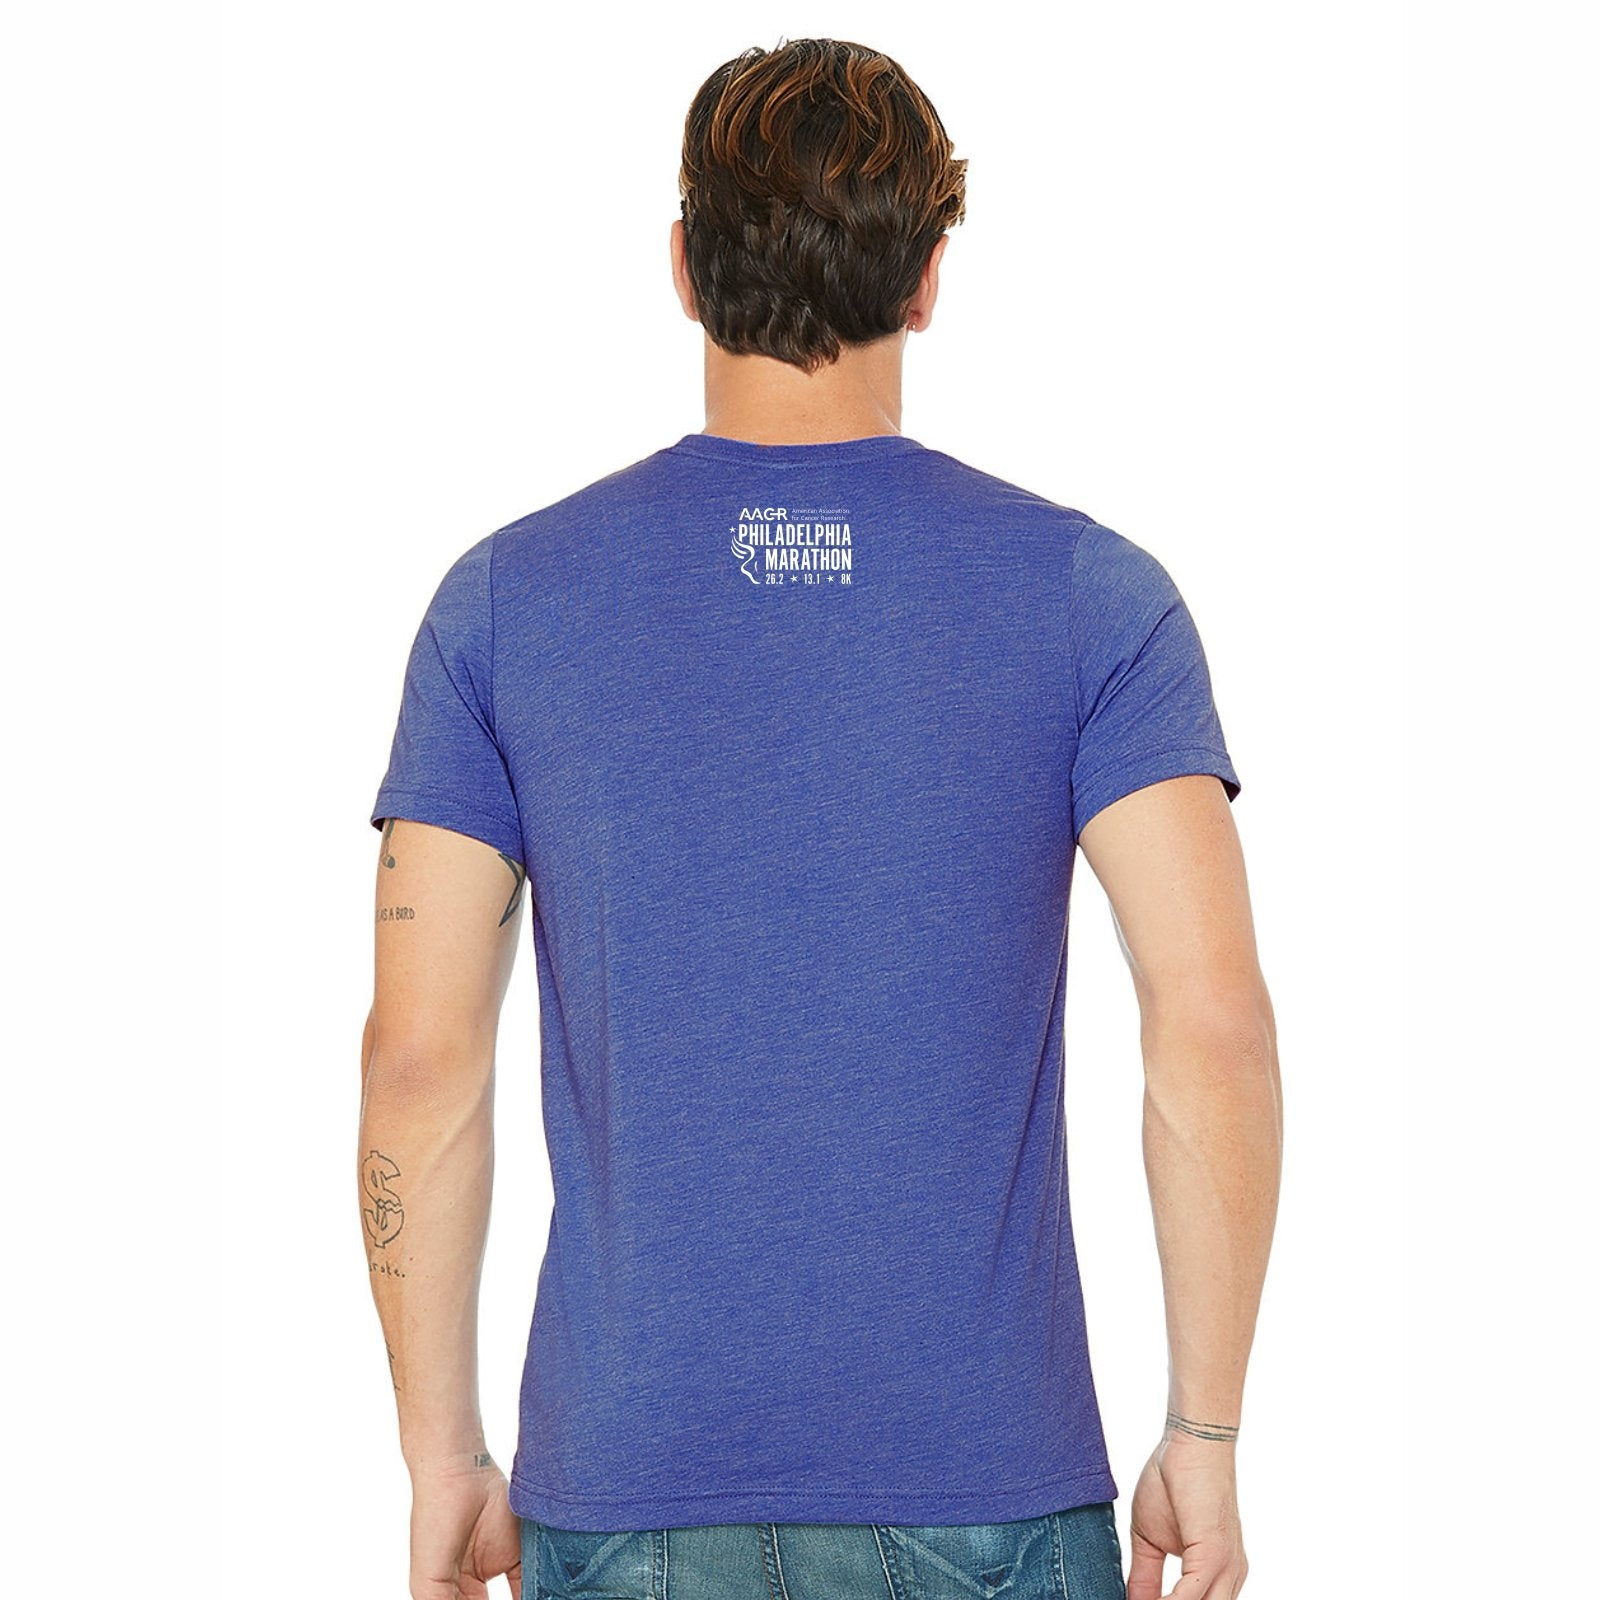 Men's SS CVC Tee -Heather True Royal 'Big Star Design' - AACR Philadelphia Marathon